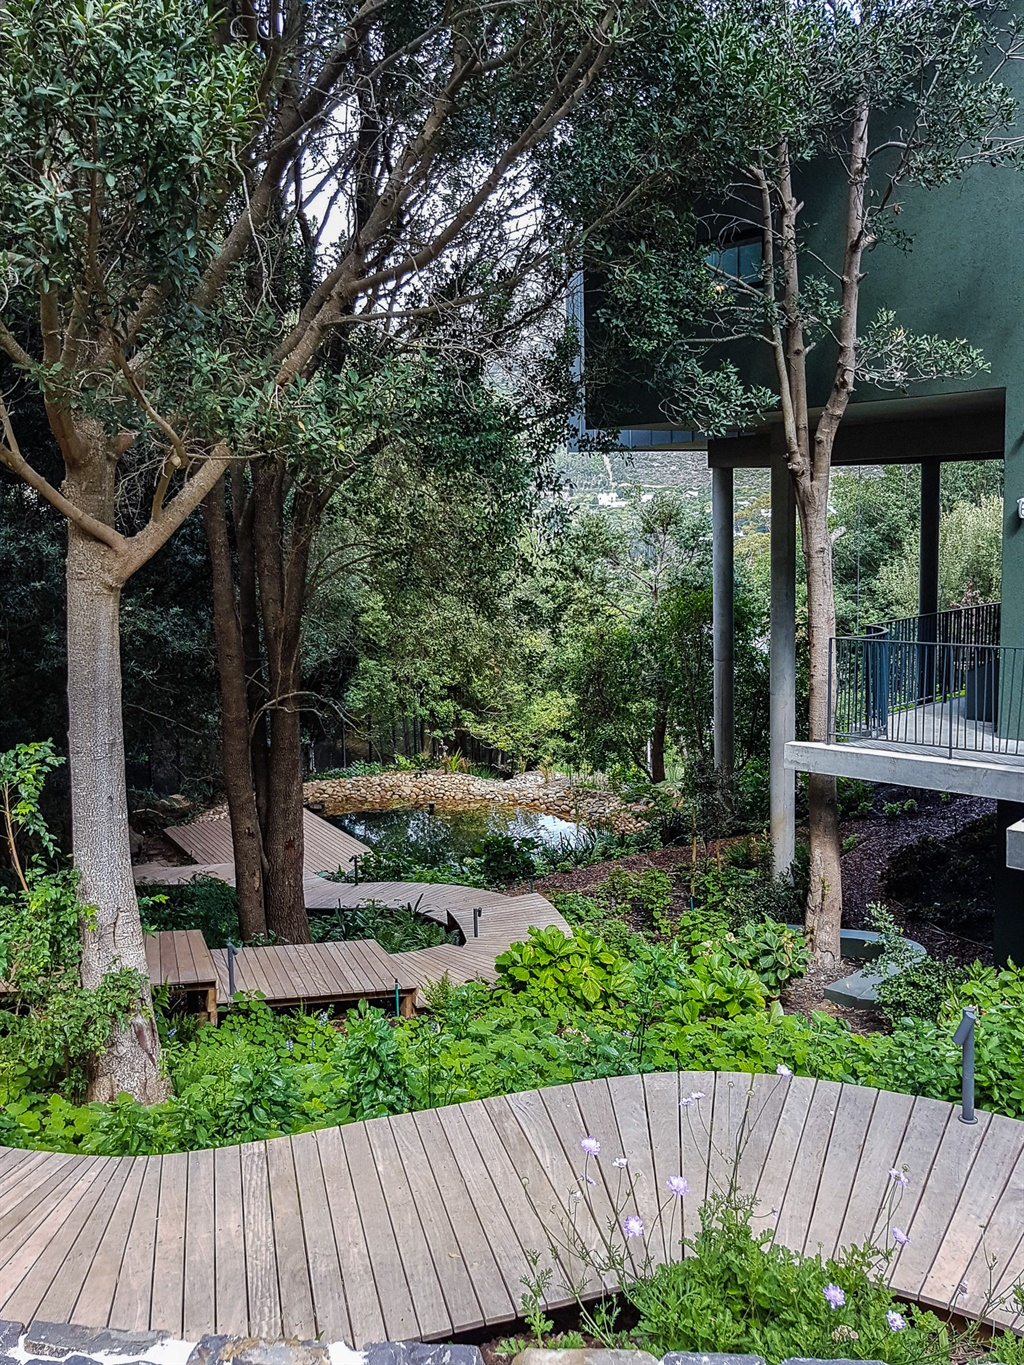 garden with trees and boarwalk